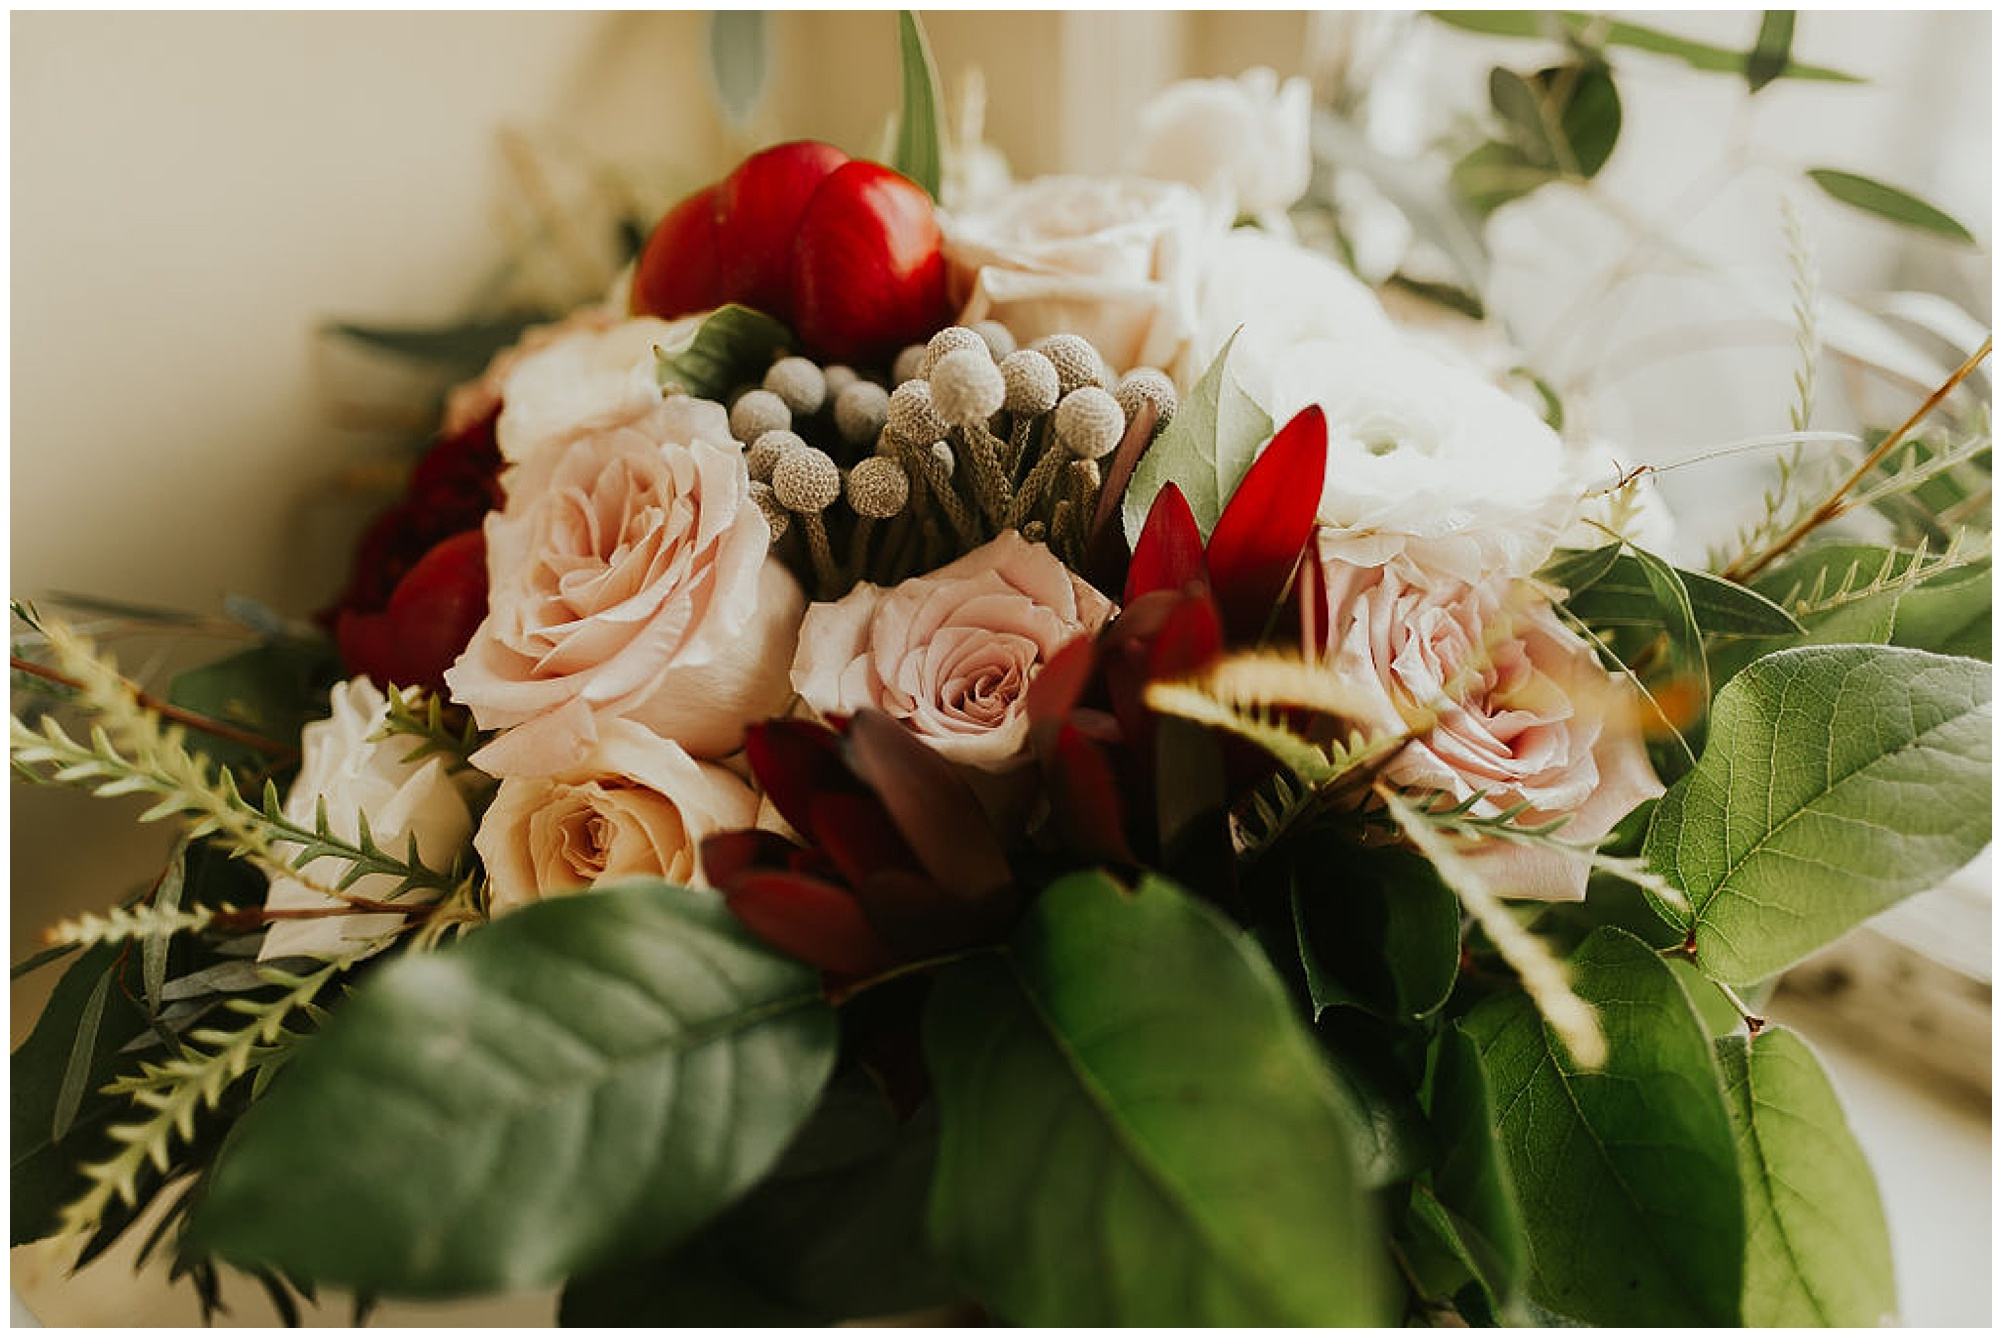 classic and romantic eastern shore wedding inspo at the tidewater inn wedding in the fall autumn. flower bouquet in red and pink. untamed undone style.